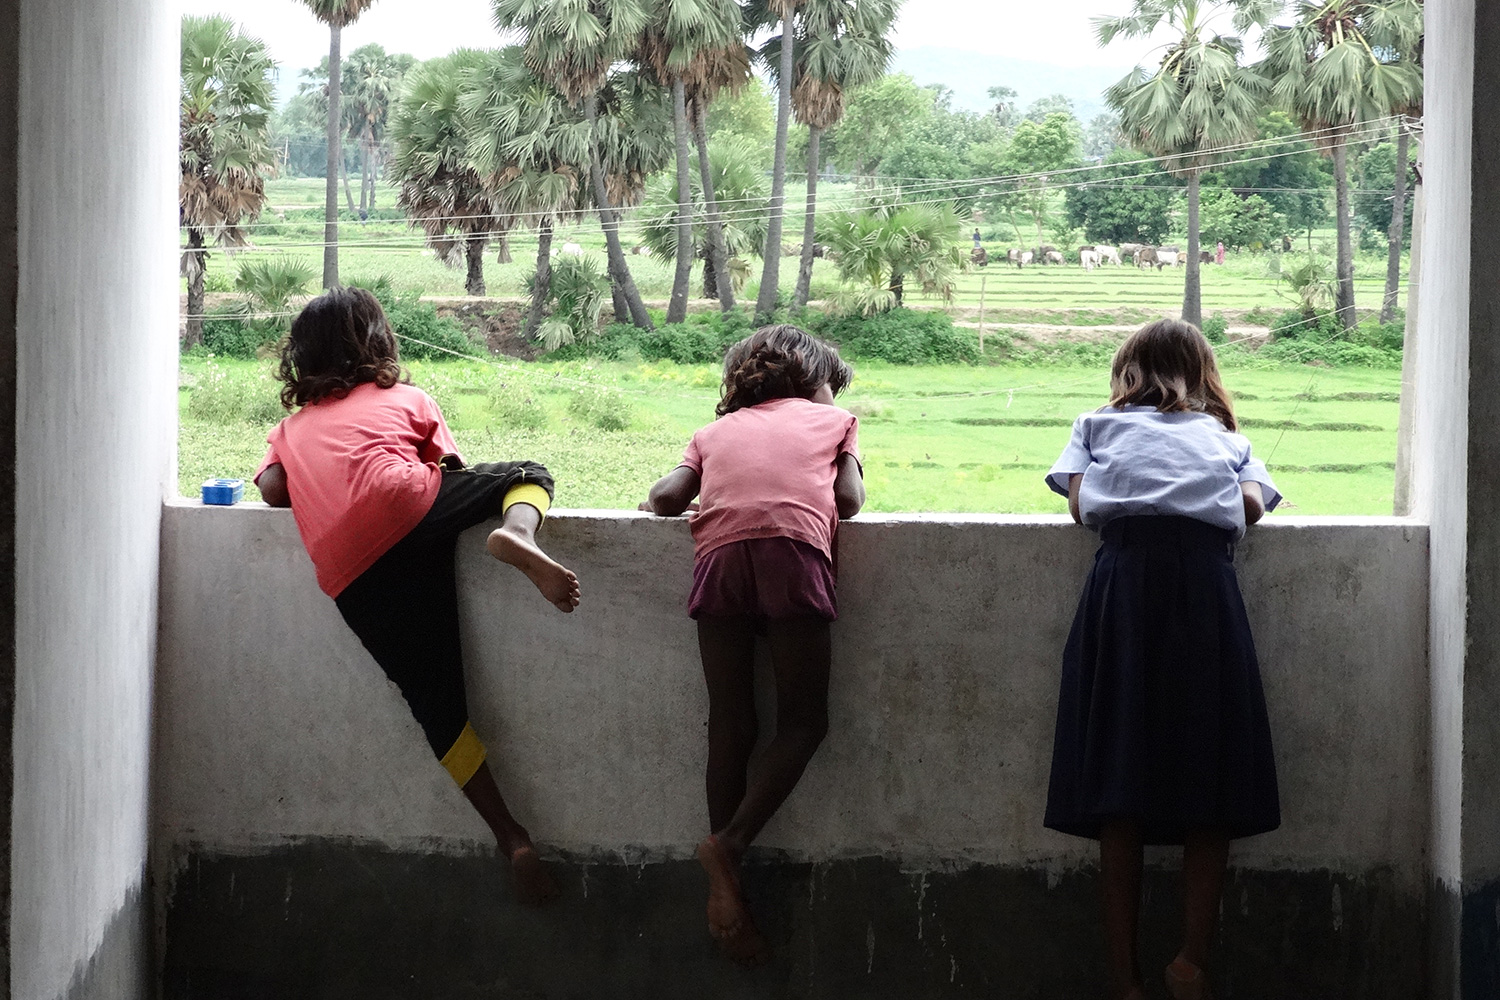 The image shows three children leaning over a wall overlooking green fields and palm trees.